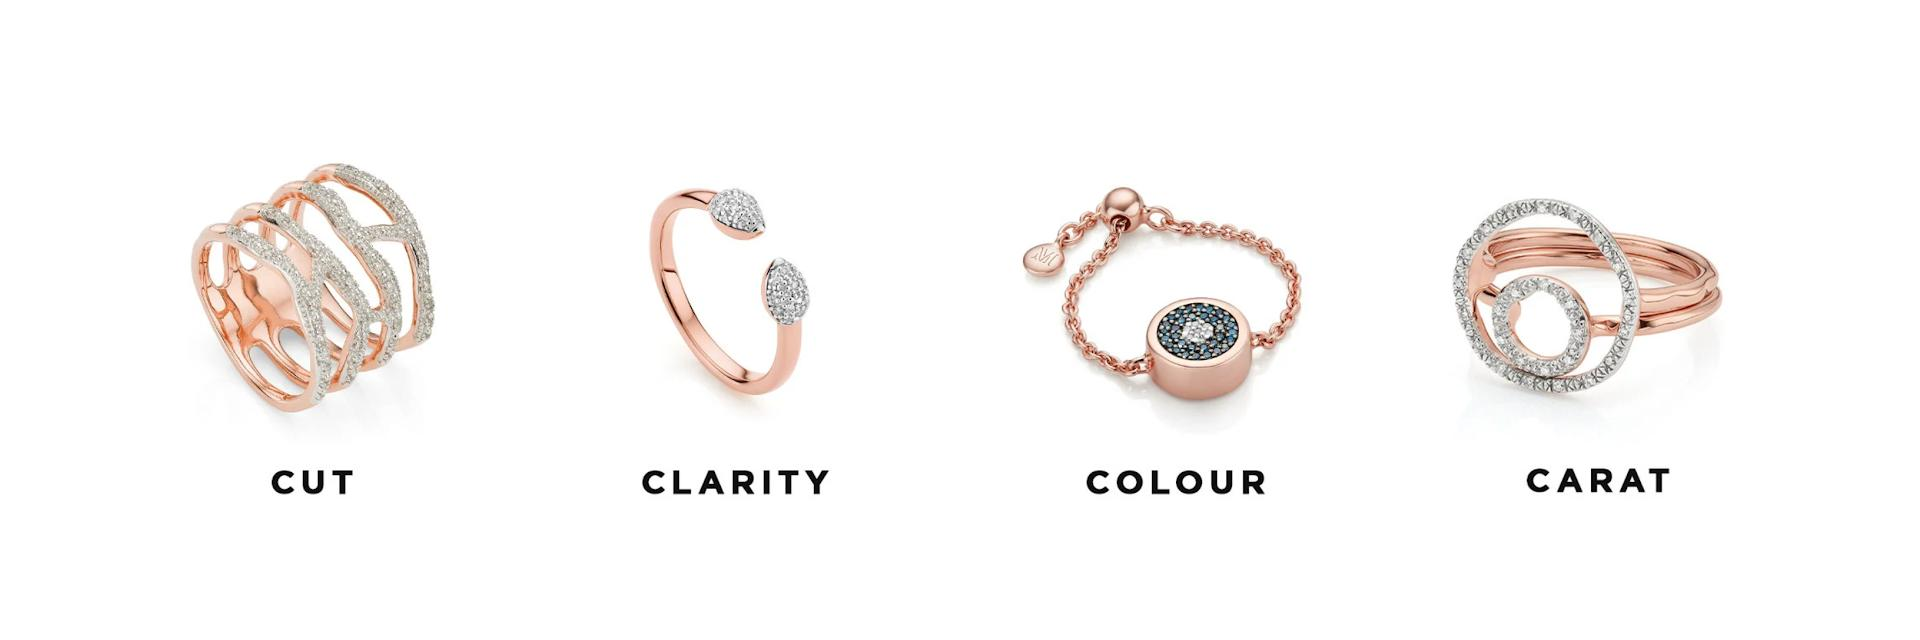 What are the 4Cs for ethical diamonds?